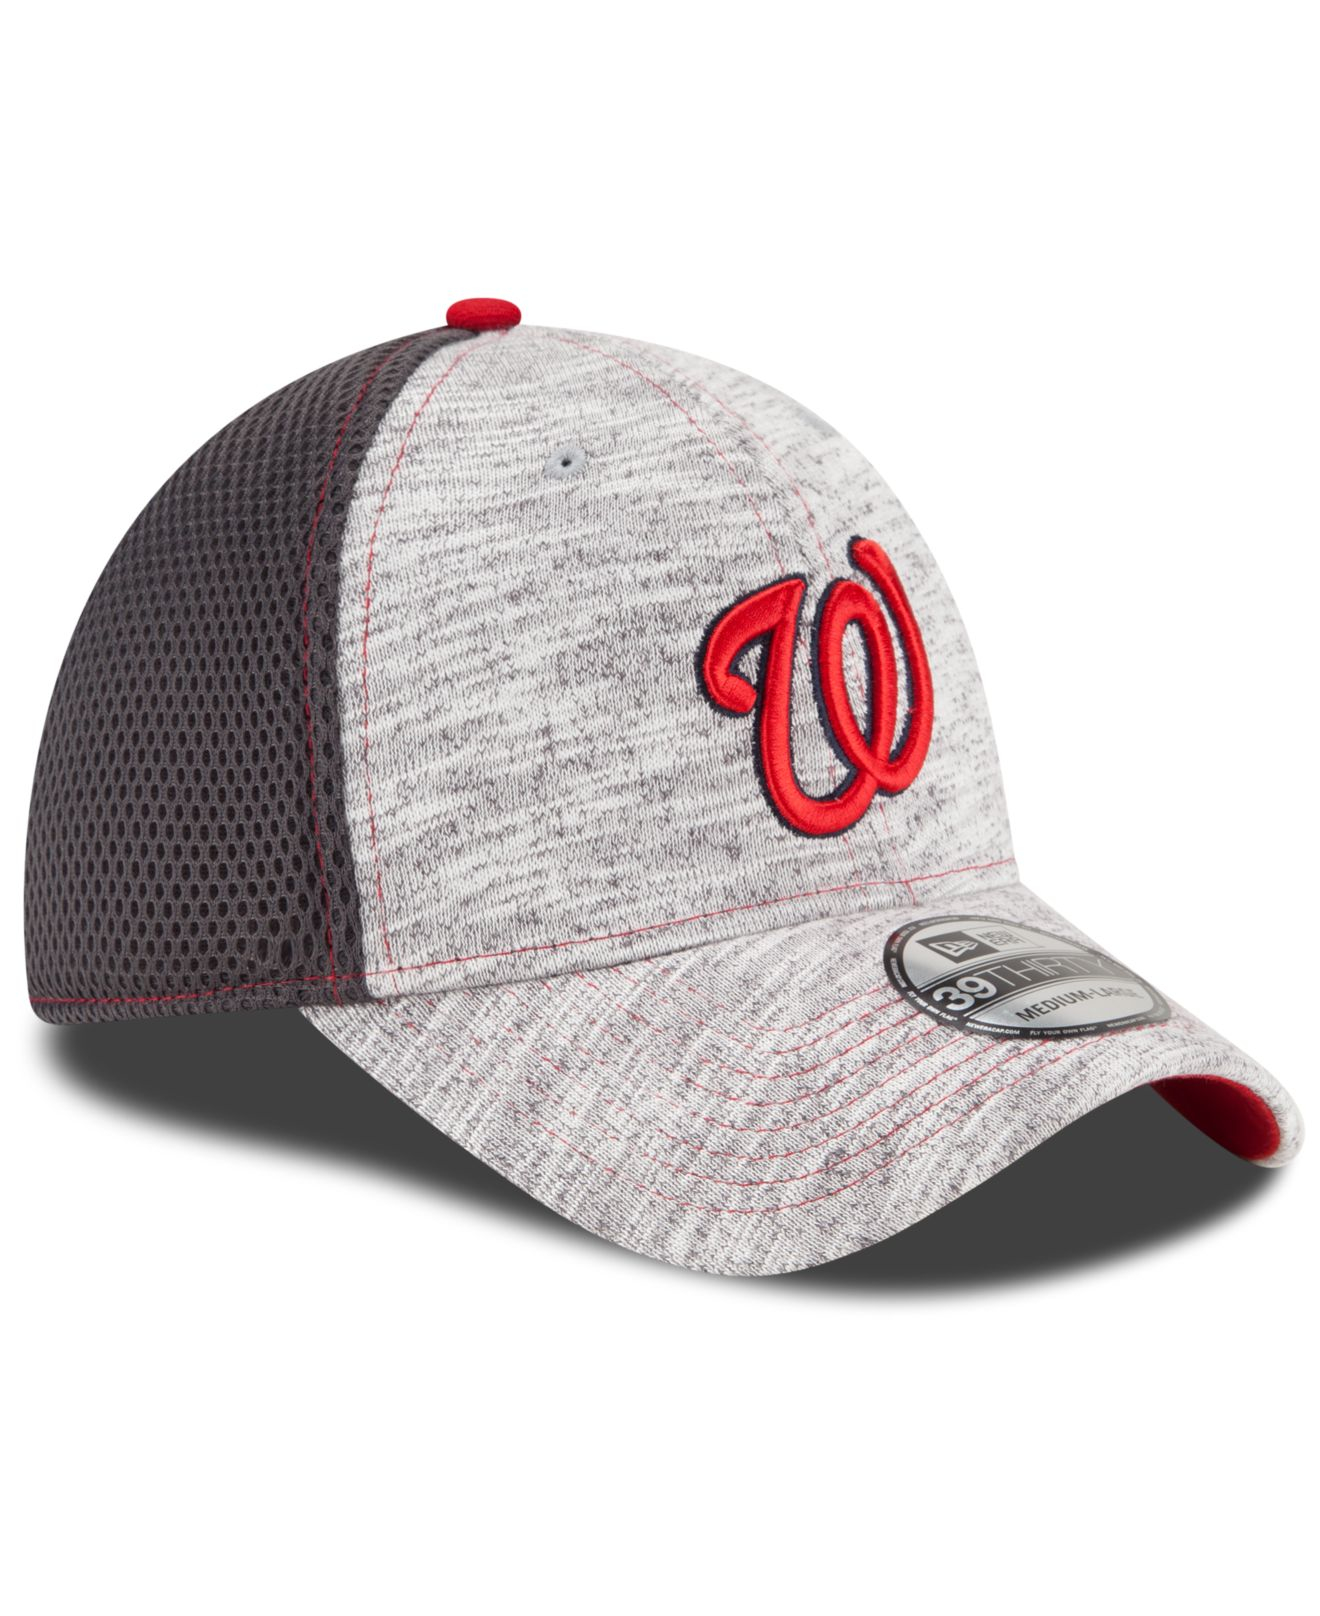 sneakers for cheap 4fce6 9498c ... usa lyst ktz washington nationals clubhouse 39thirty cap in gray for  men c2555 5cdbe